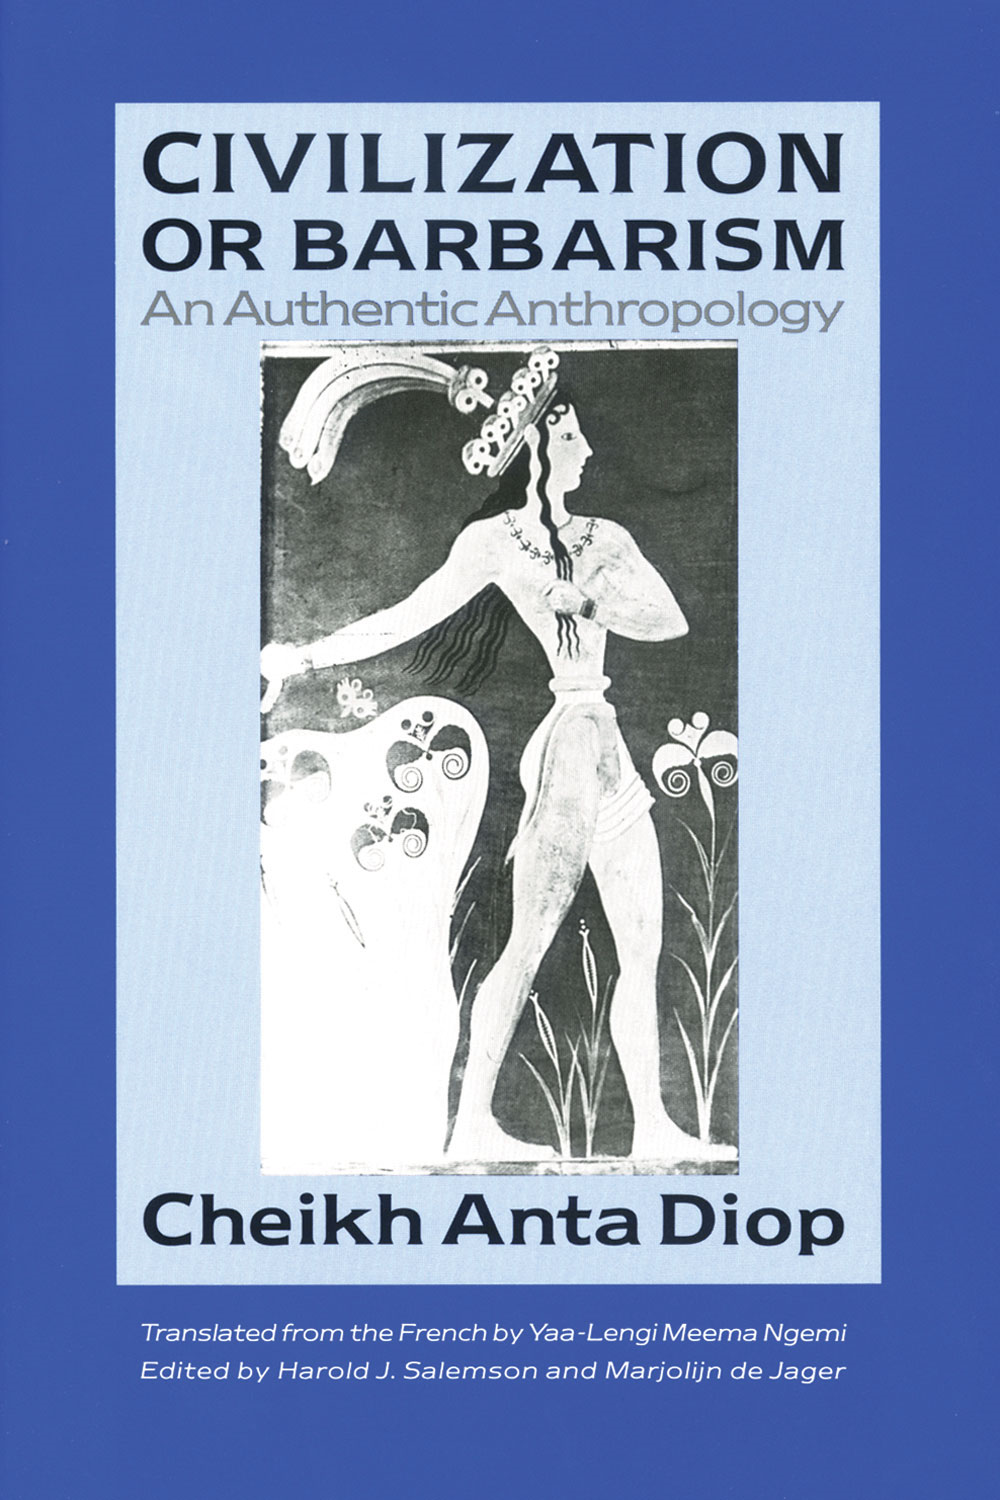 Civilization or Barbarism: An Authentic Anthropology By: Cheikh Anta Diop